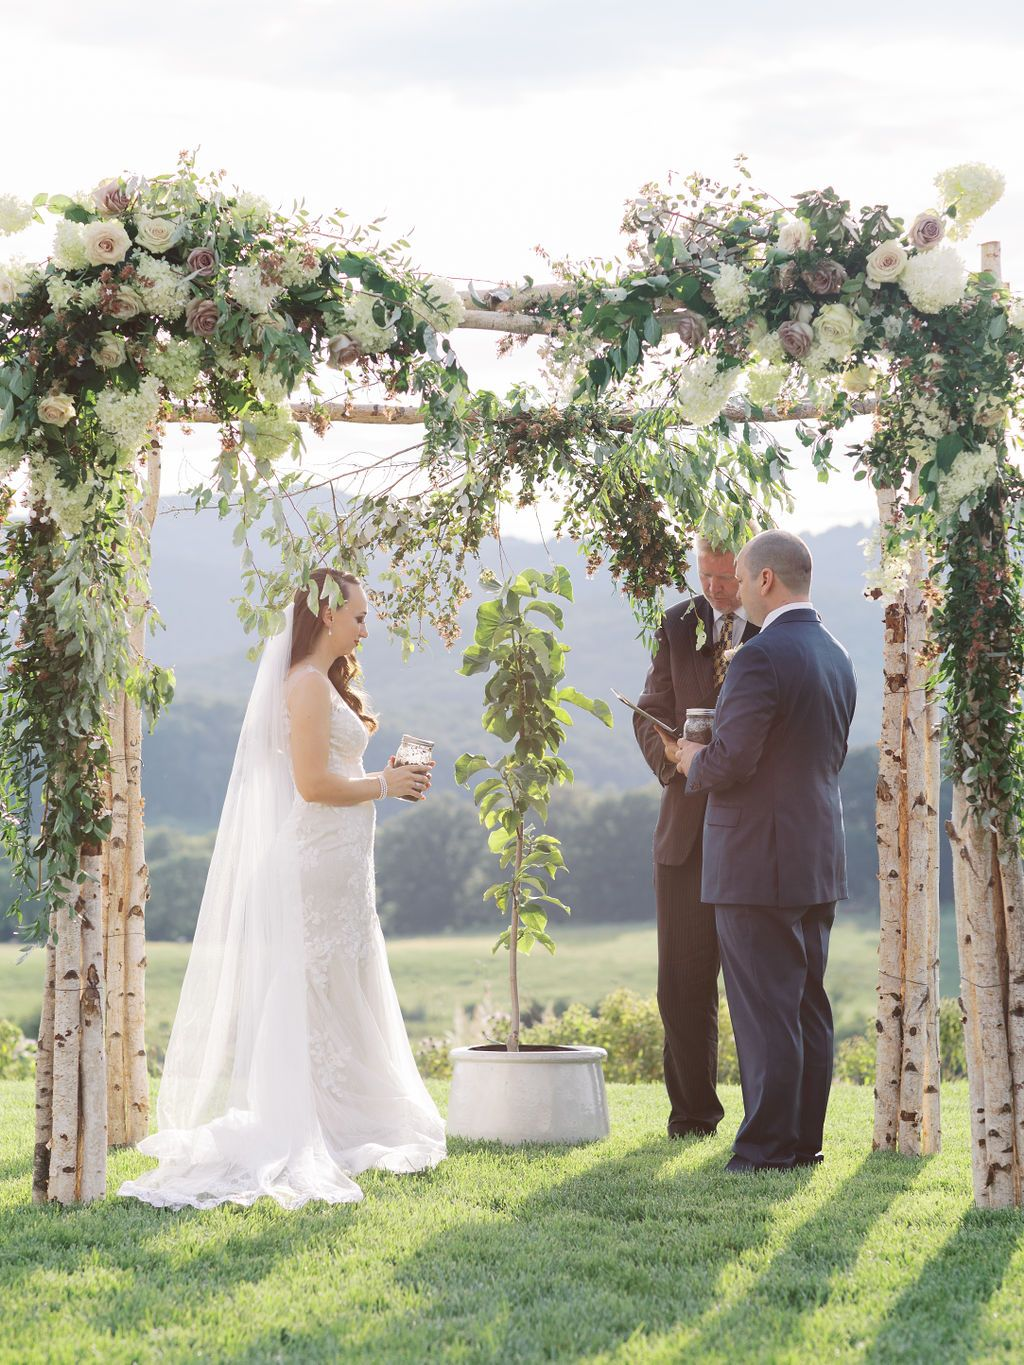 Floral arch accentuate a symbolic ceremony at Pippin Hill